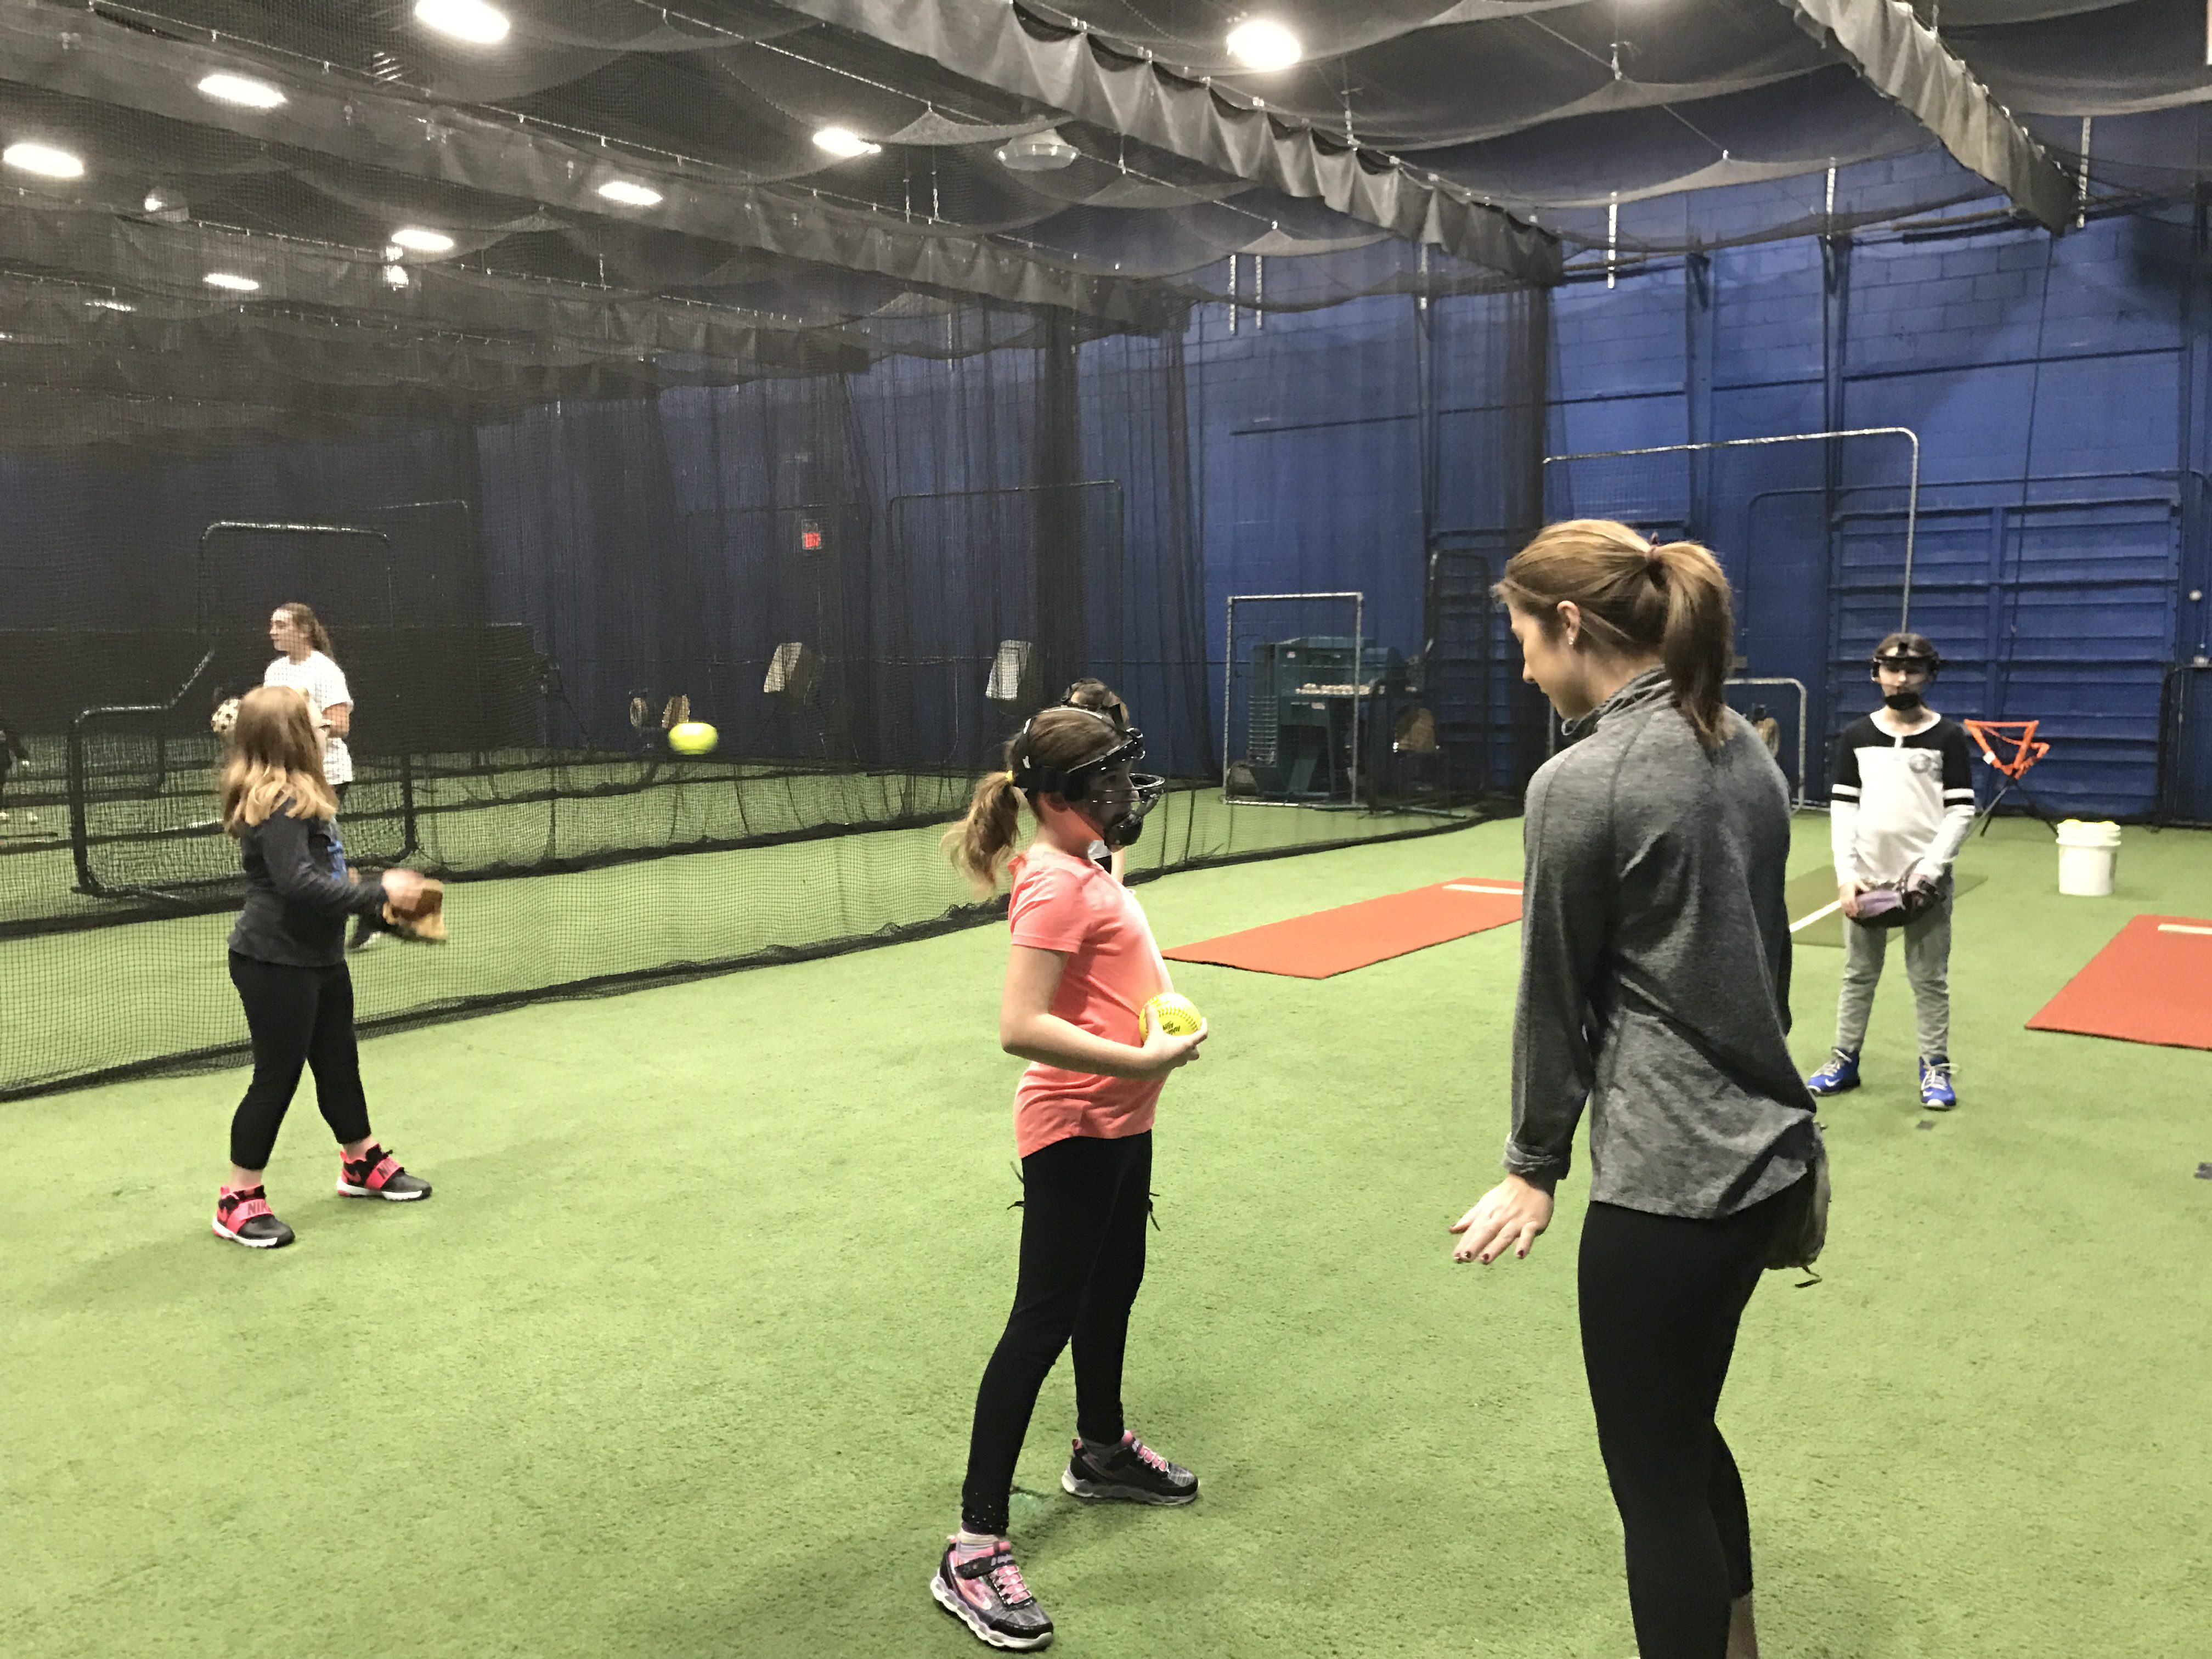 Softball Pitching, Hitting, and Catching